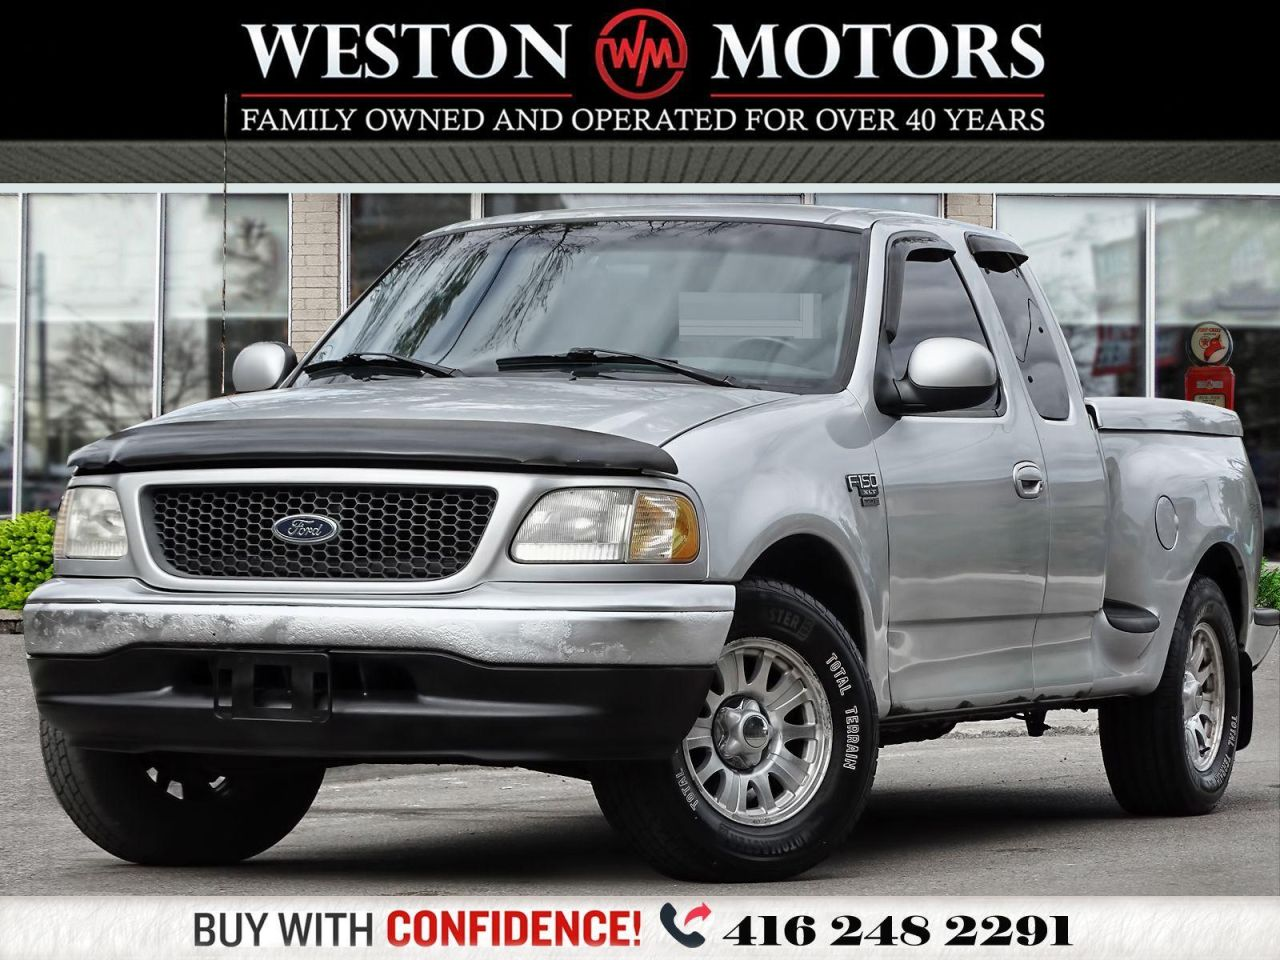 2001 Ford F-150 TRITON*SPORT*V8*BED COVER*SOLD AS IS!!*